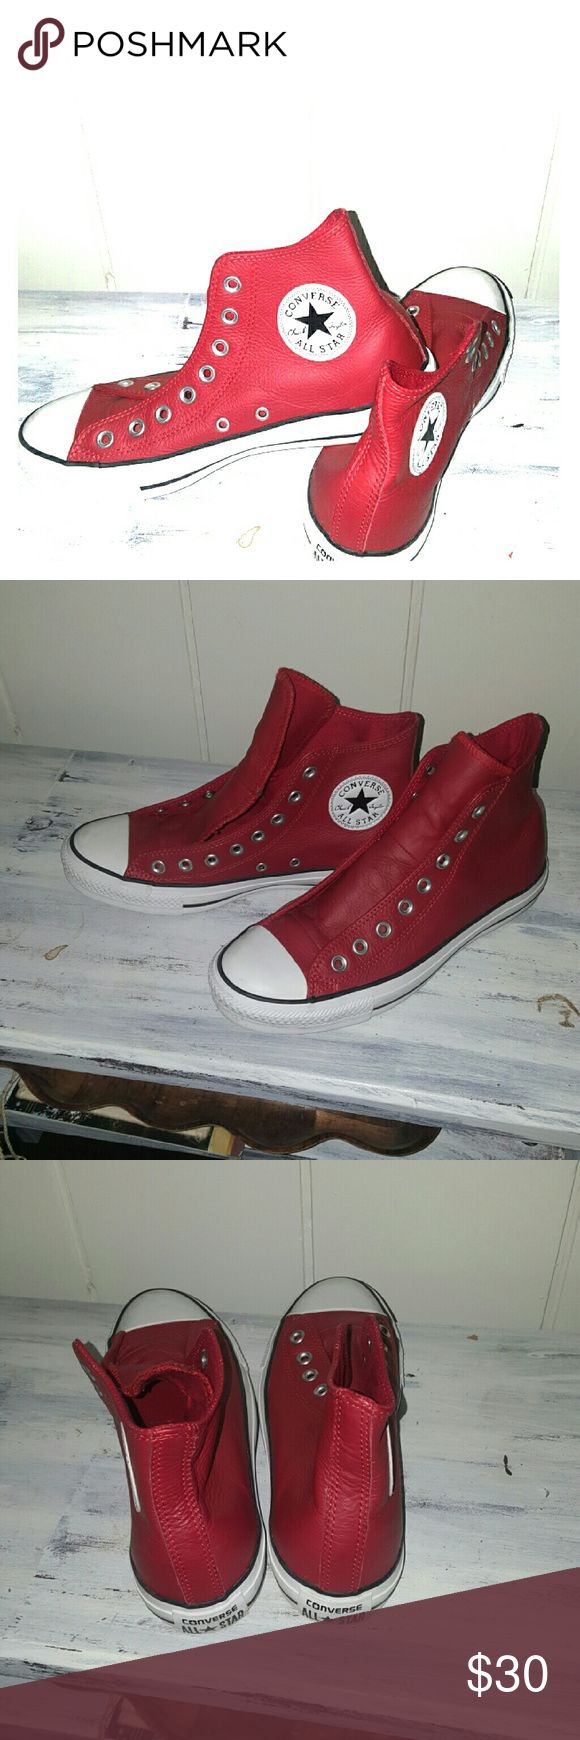 Red Leather Converse All Star  High Tops Barely worn, red leather Converse All Stars. Excellent conditon. Just need shoe laces. Perfect for the atheletic chic outfit! Converse Shoes Athletic Shoes